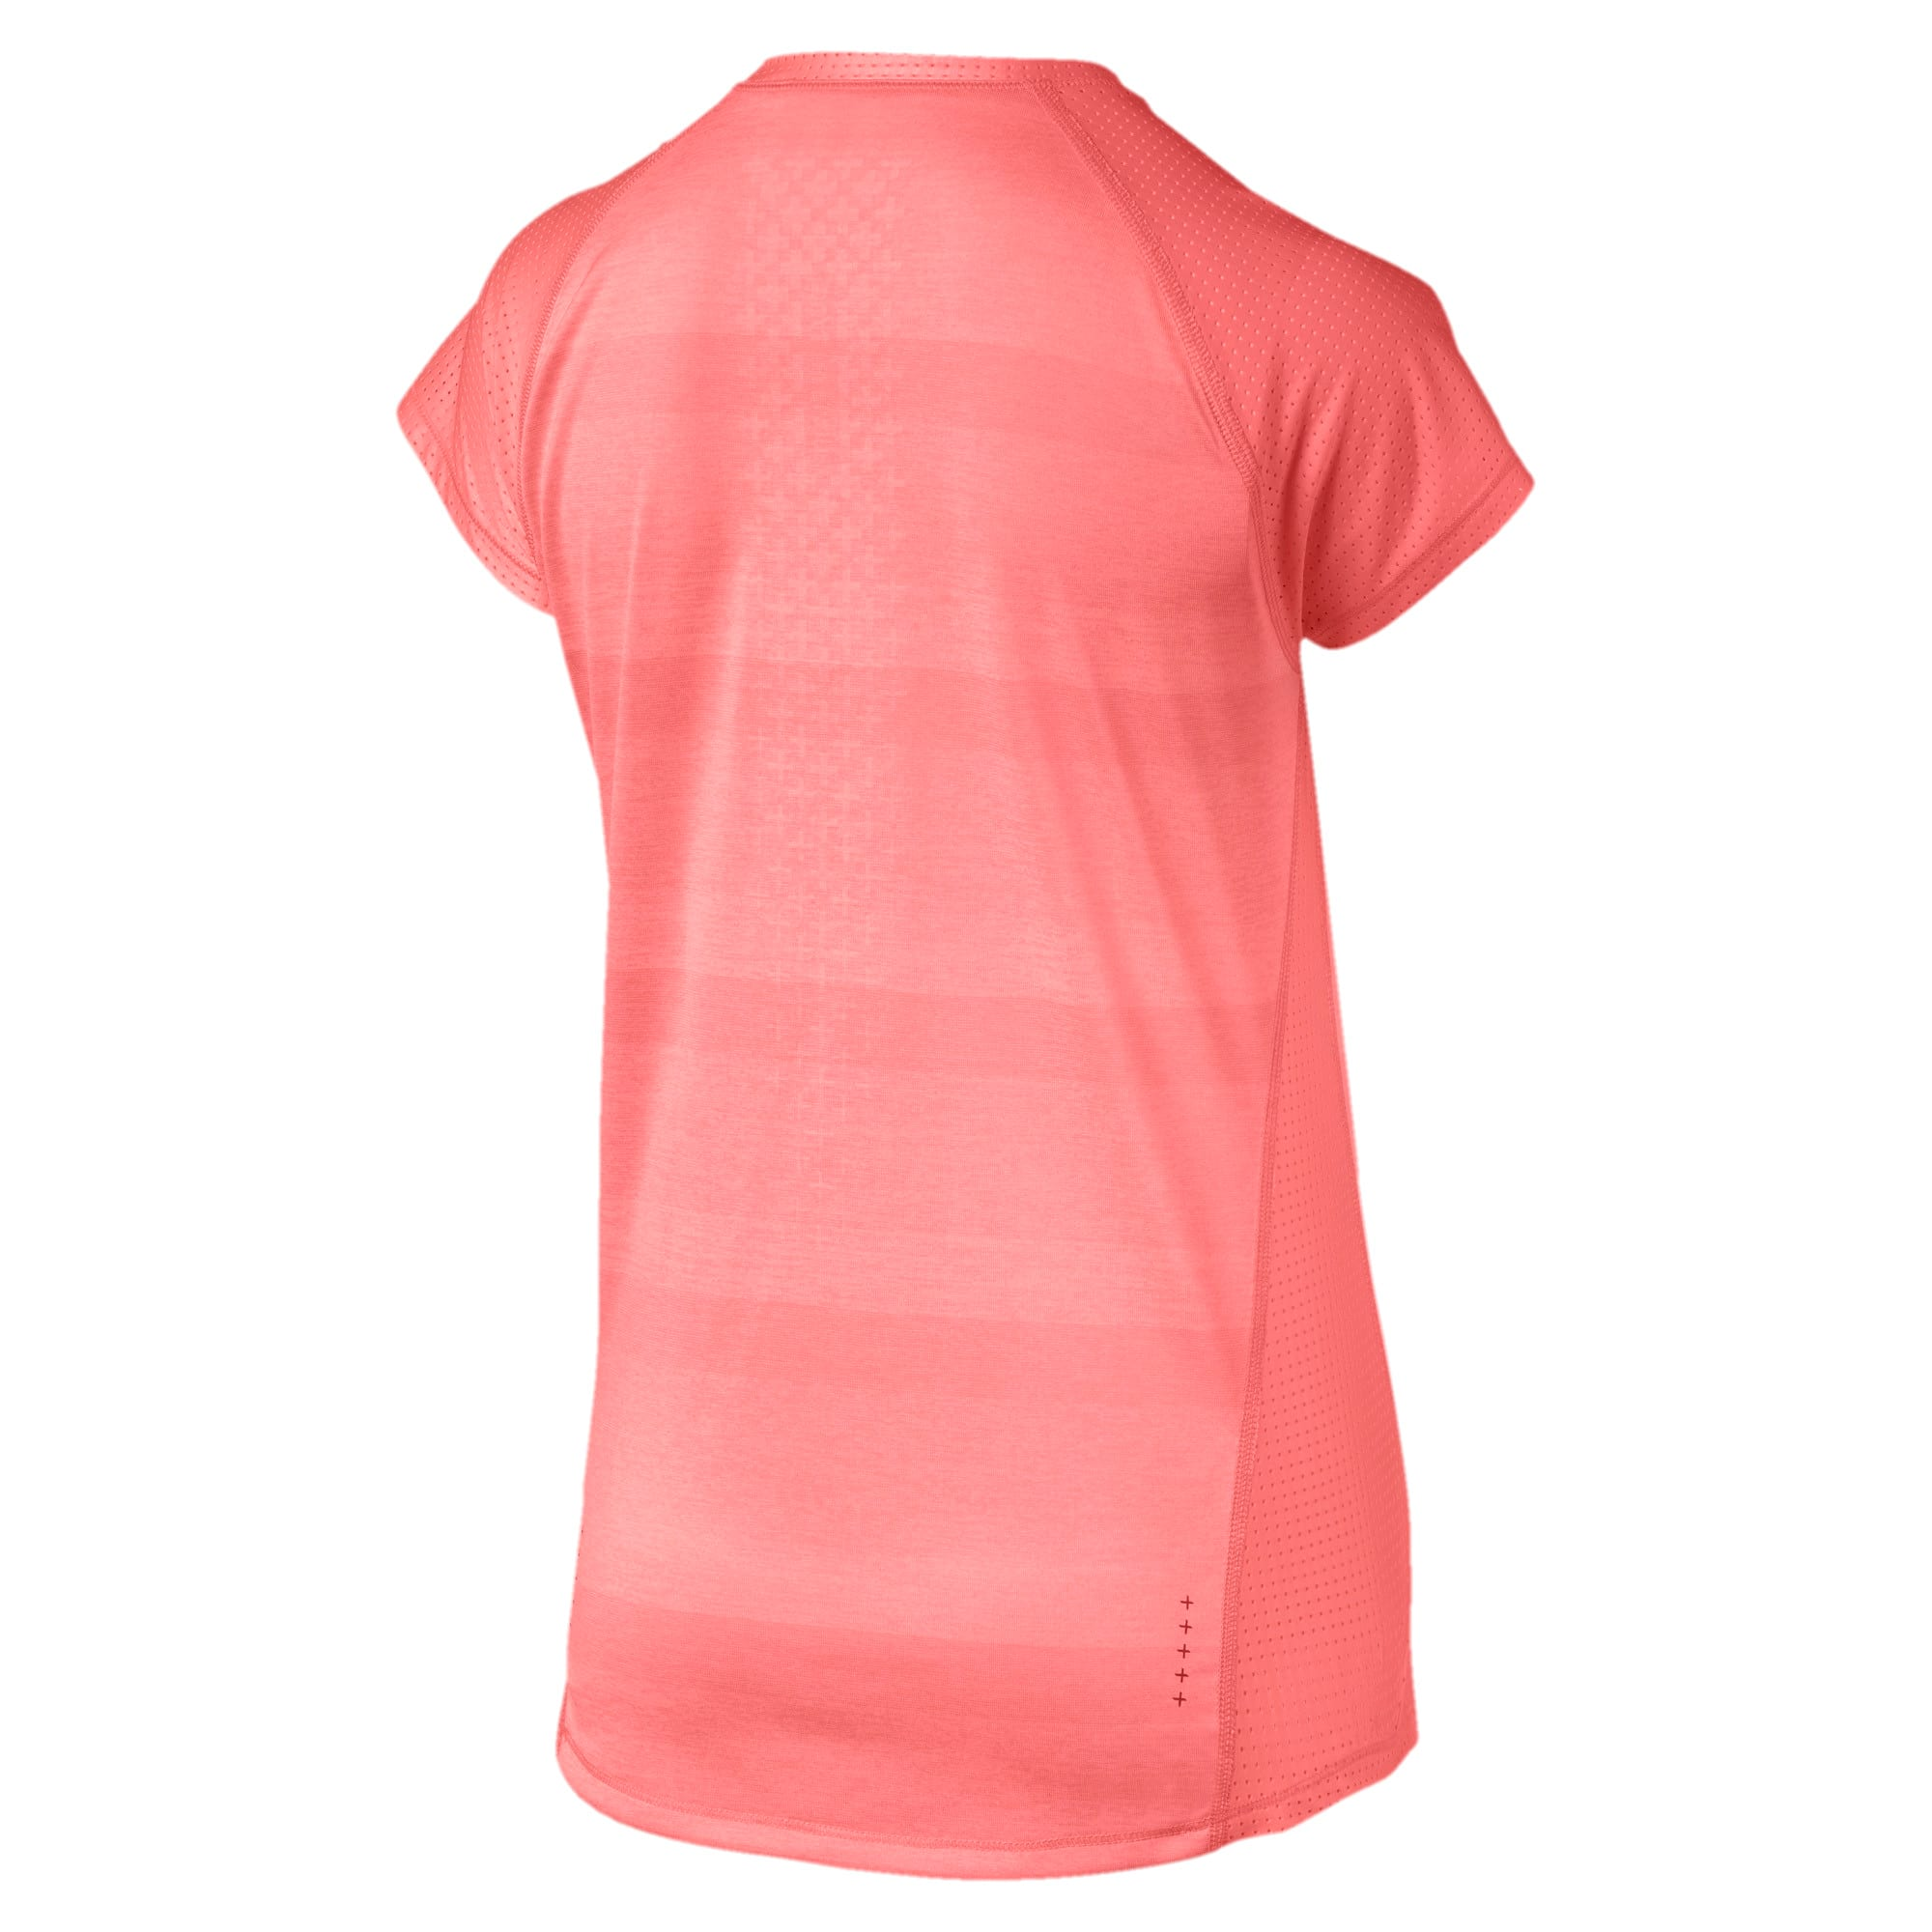 Thumbnail 5 of Thermo R+ Damen Running T-Shirt, Bright Peach Heather, medium